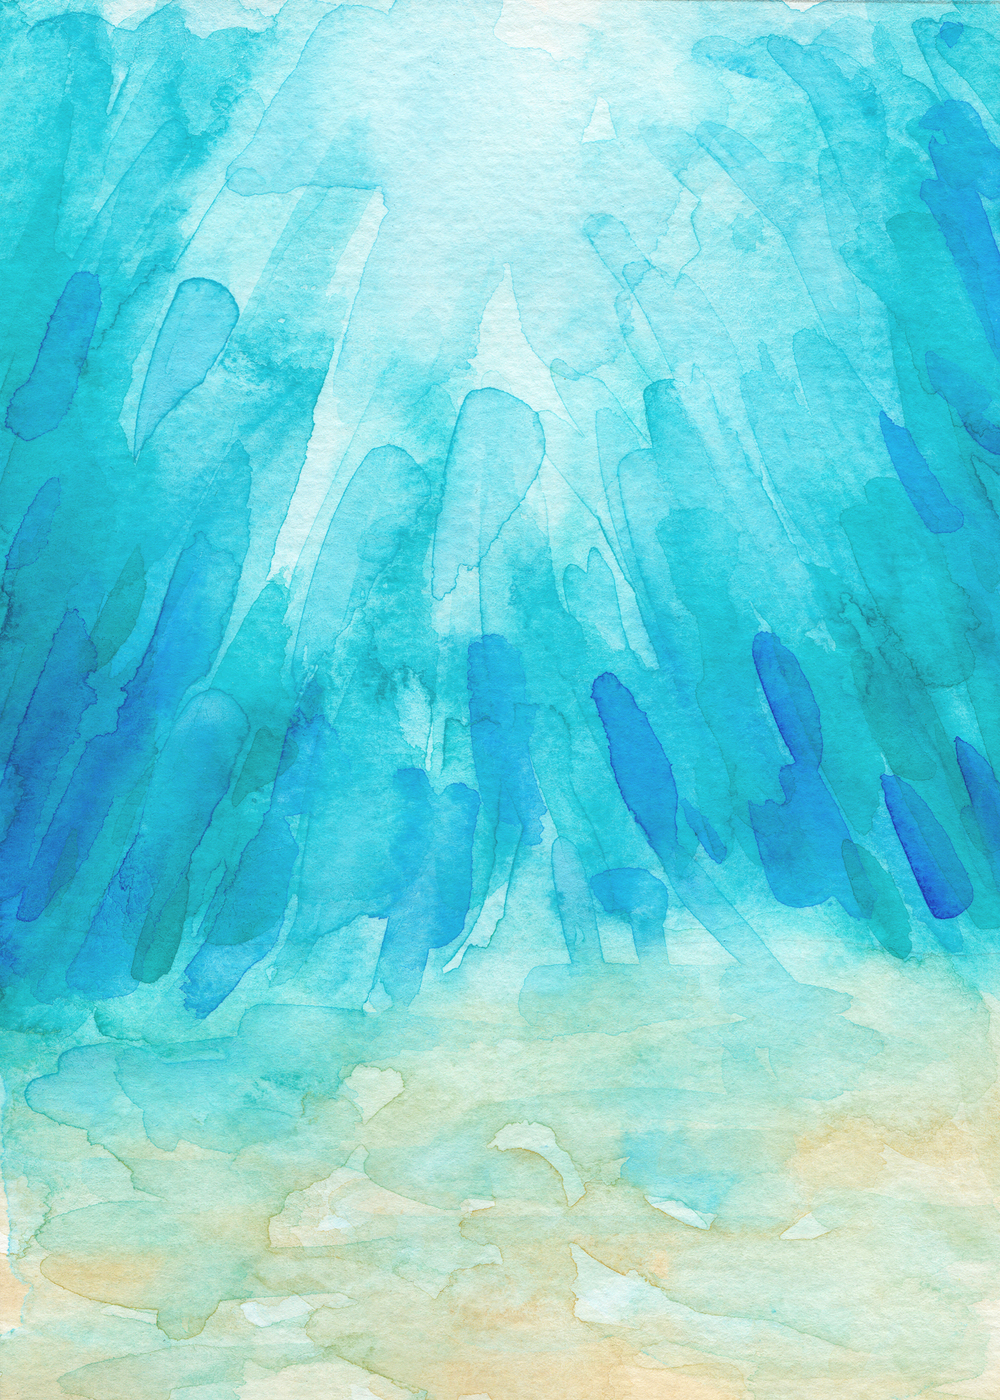 Under The Sea | Original Watercolor Painting by Kristen Laczi of Hello Monday Design